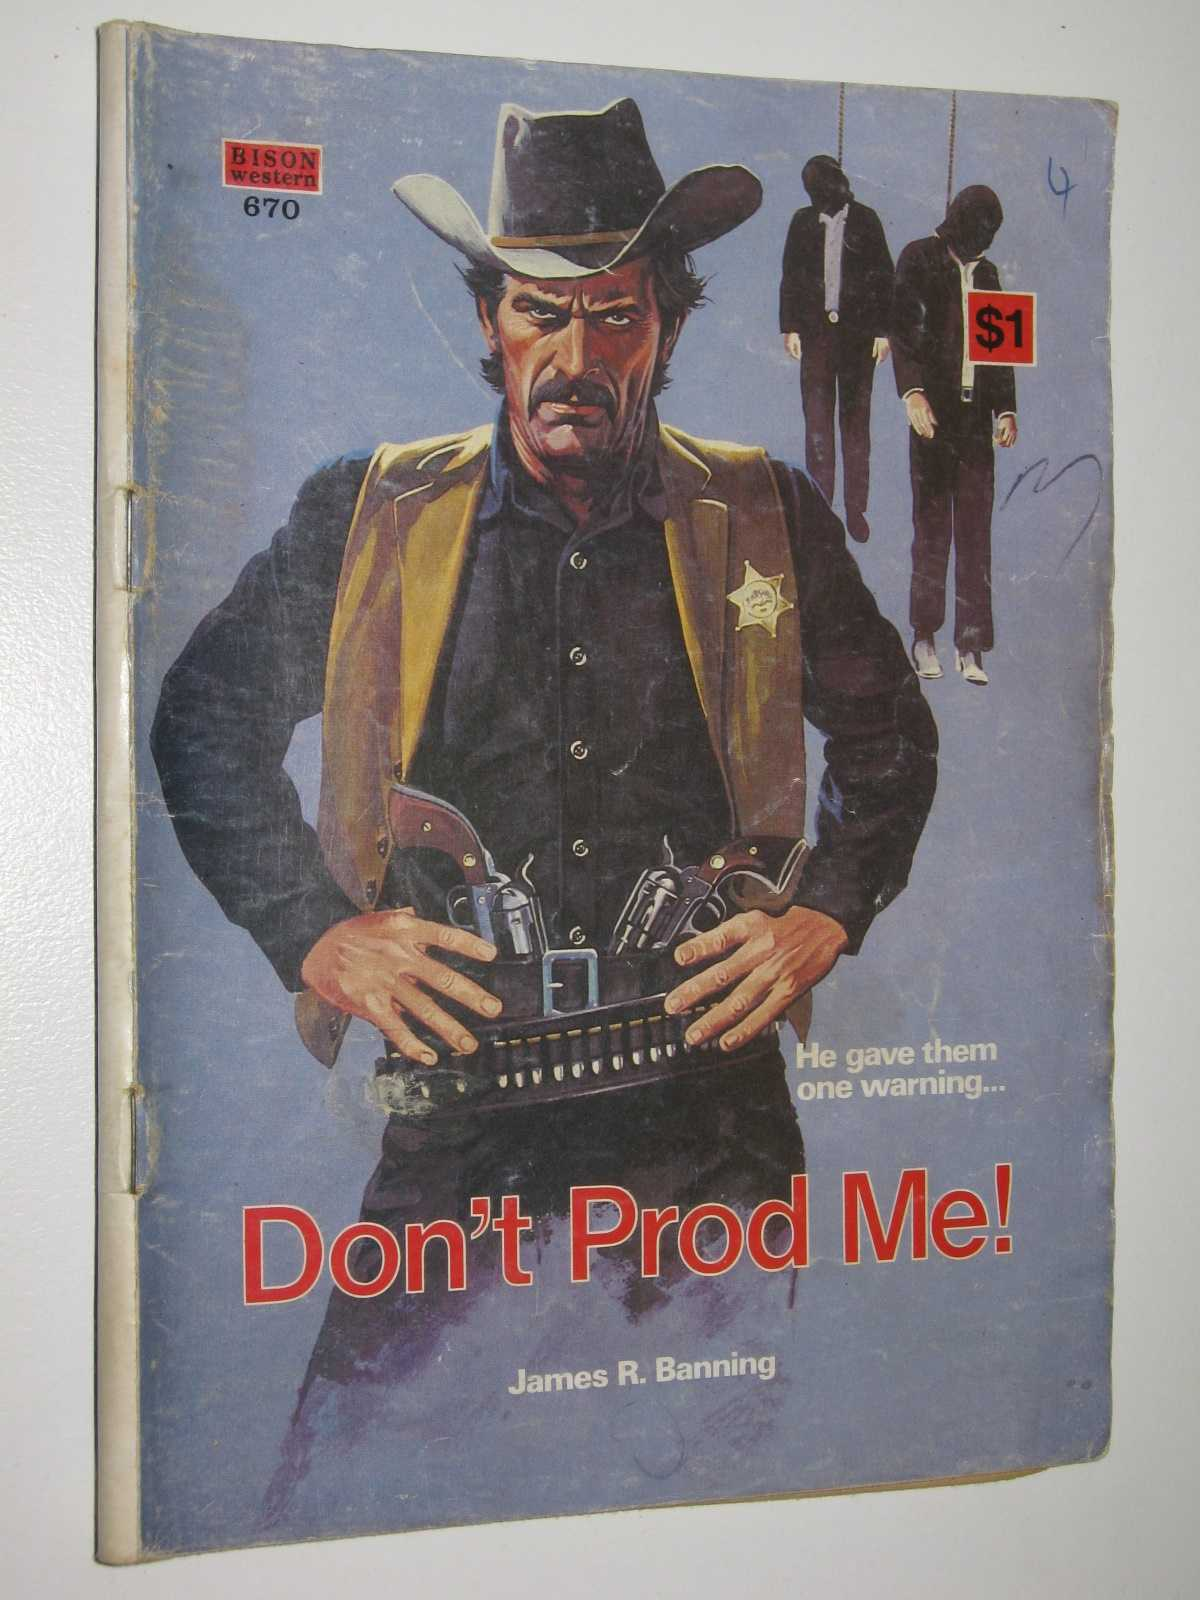 Image for Don't Prod Me! - Bison Western Series #670